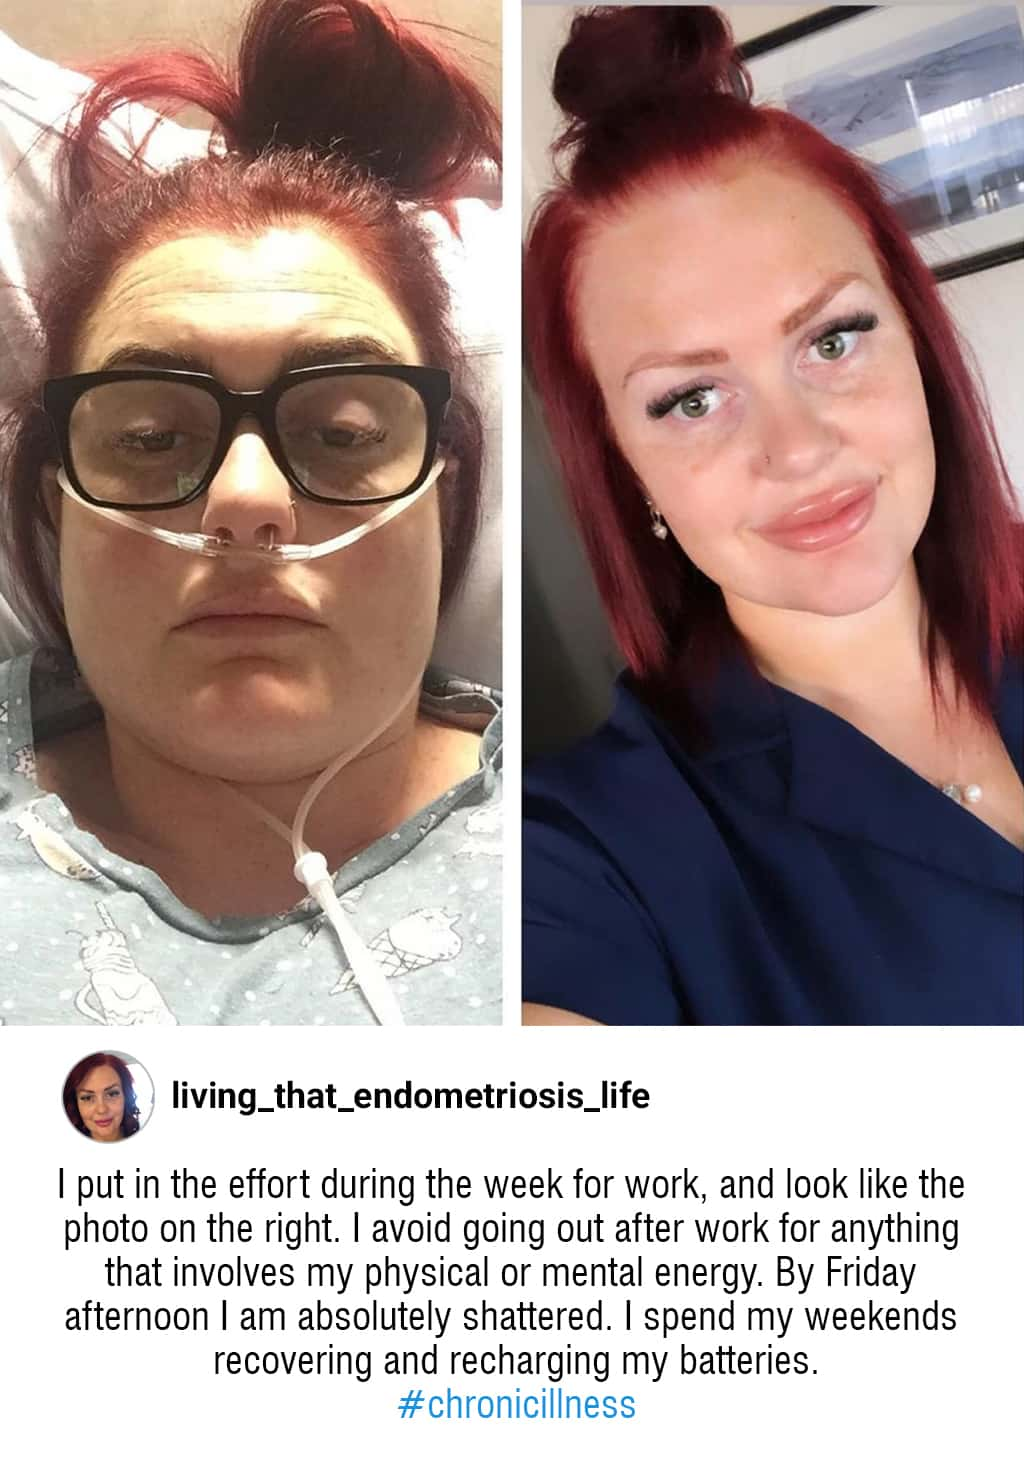 An Instagram Post With An Image Of A Woman Sick And In The Hospital Next To An Image Of The Same Woman Looking Healthy And Happy With A Description Of How Difficult Chronic Illness And Disability Is